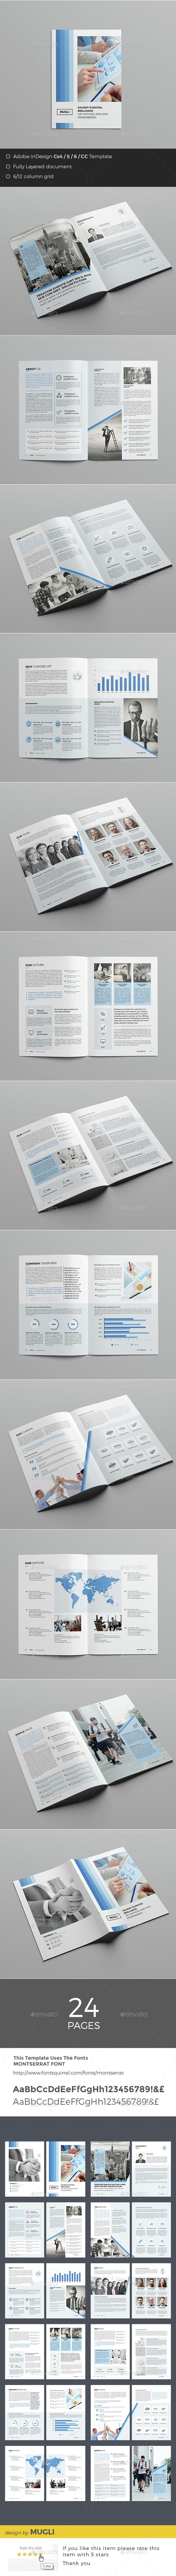 Business Brochure Template InDesign INDD. Download here: http://graphicriver.net/item/business-brochure/15067872?ref=ksioks